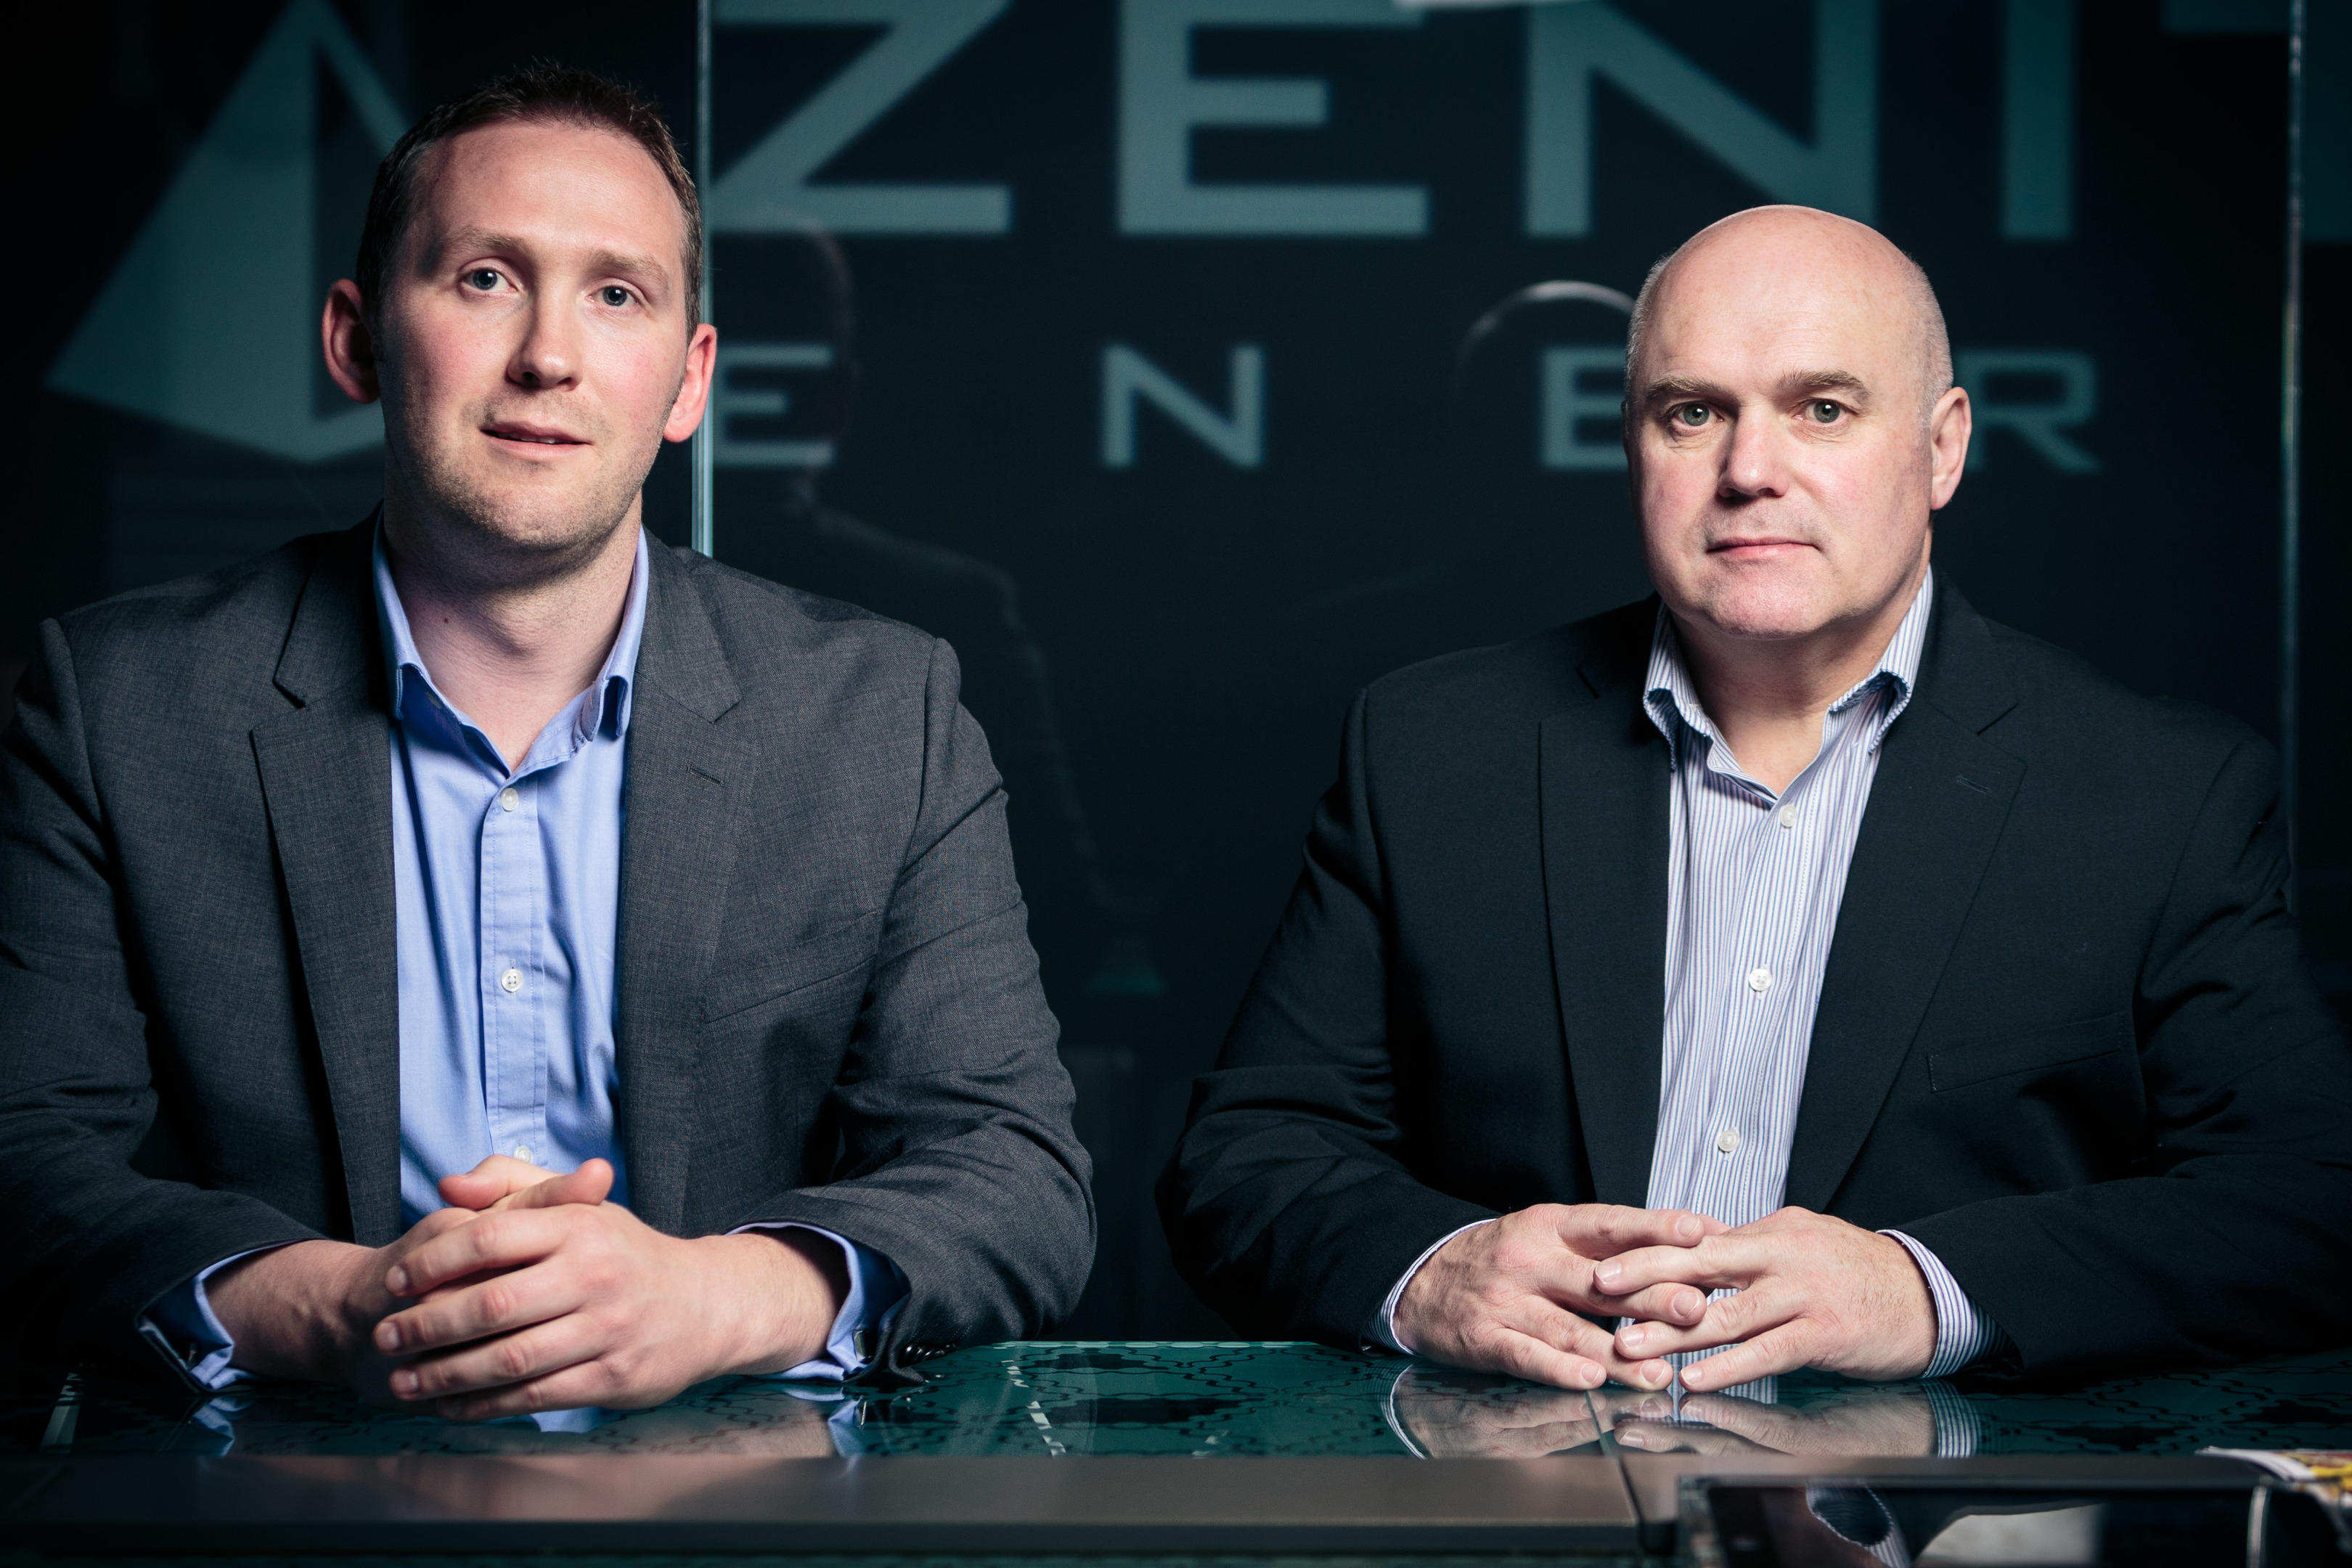 Martin Booth (left), managing director and Chris Collie, operations director of Zenith Energy